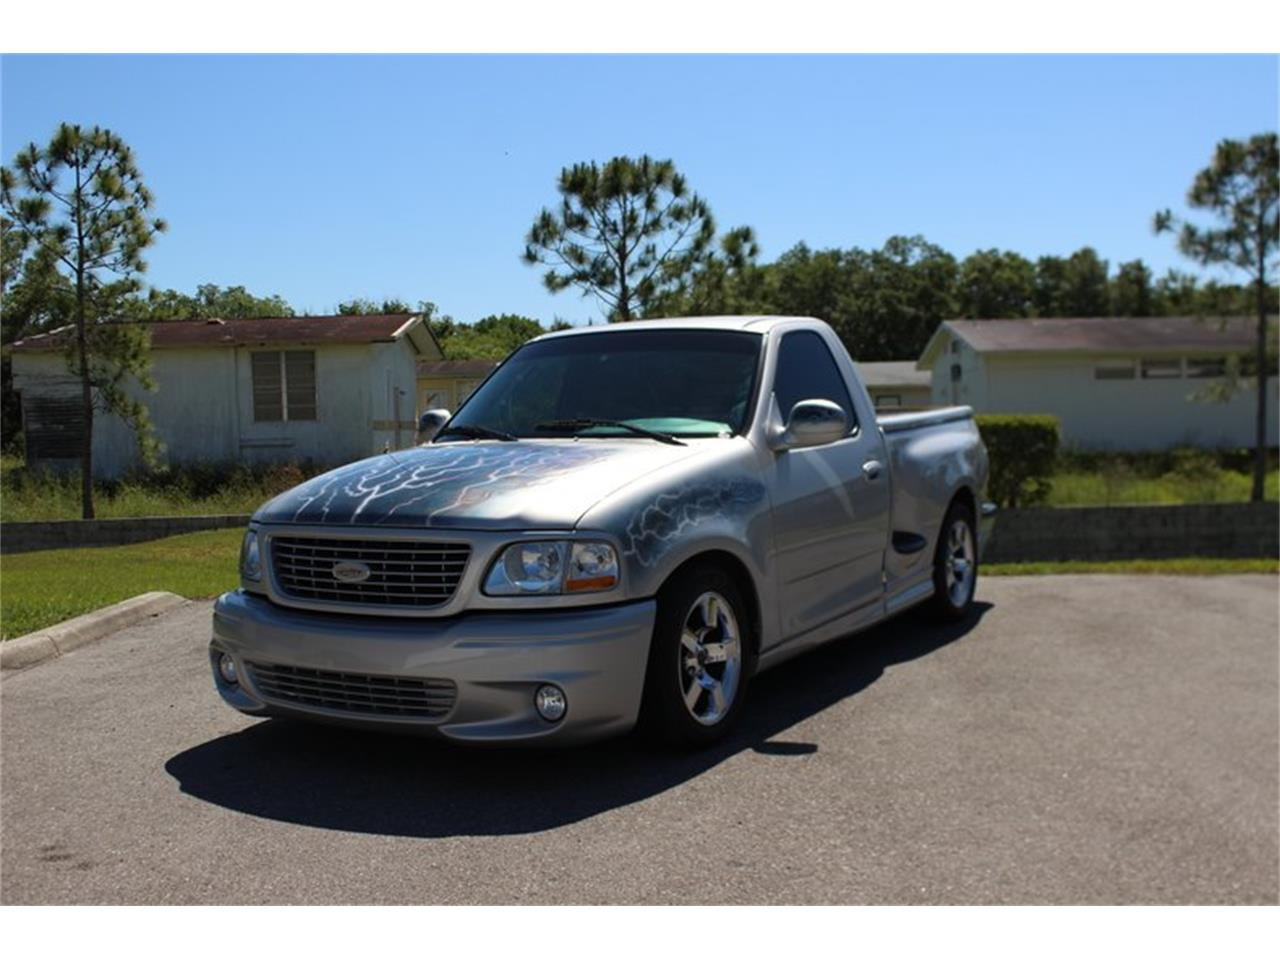 2002 Ford Lightning for sale in Palmetto, FL – photo 39